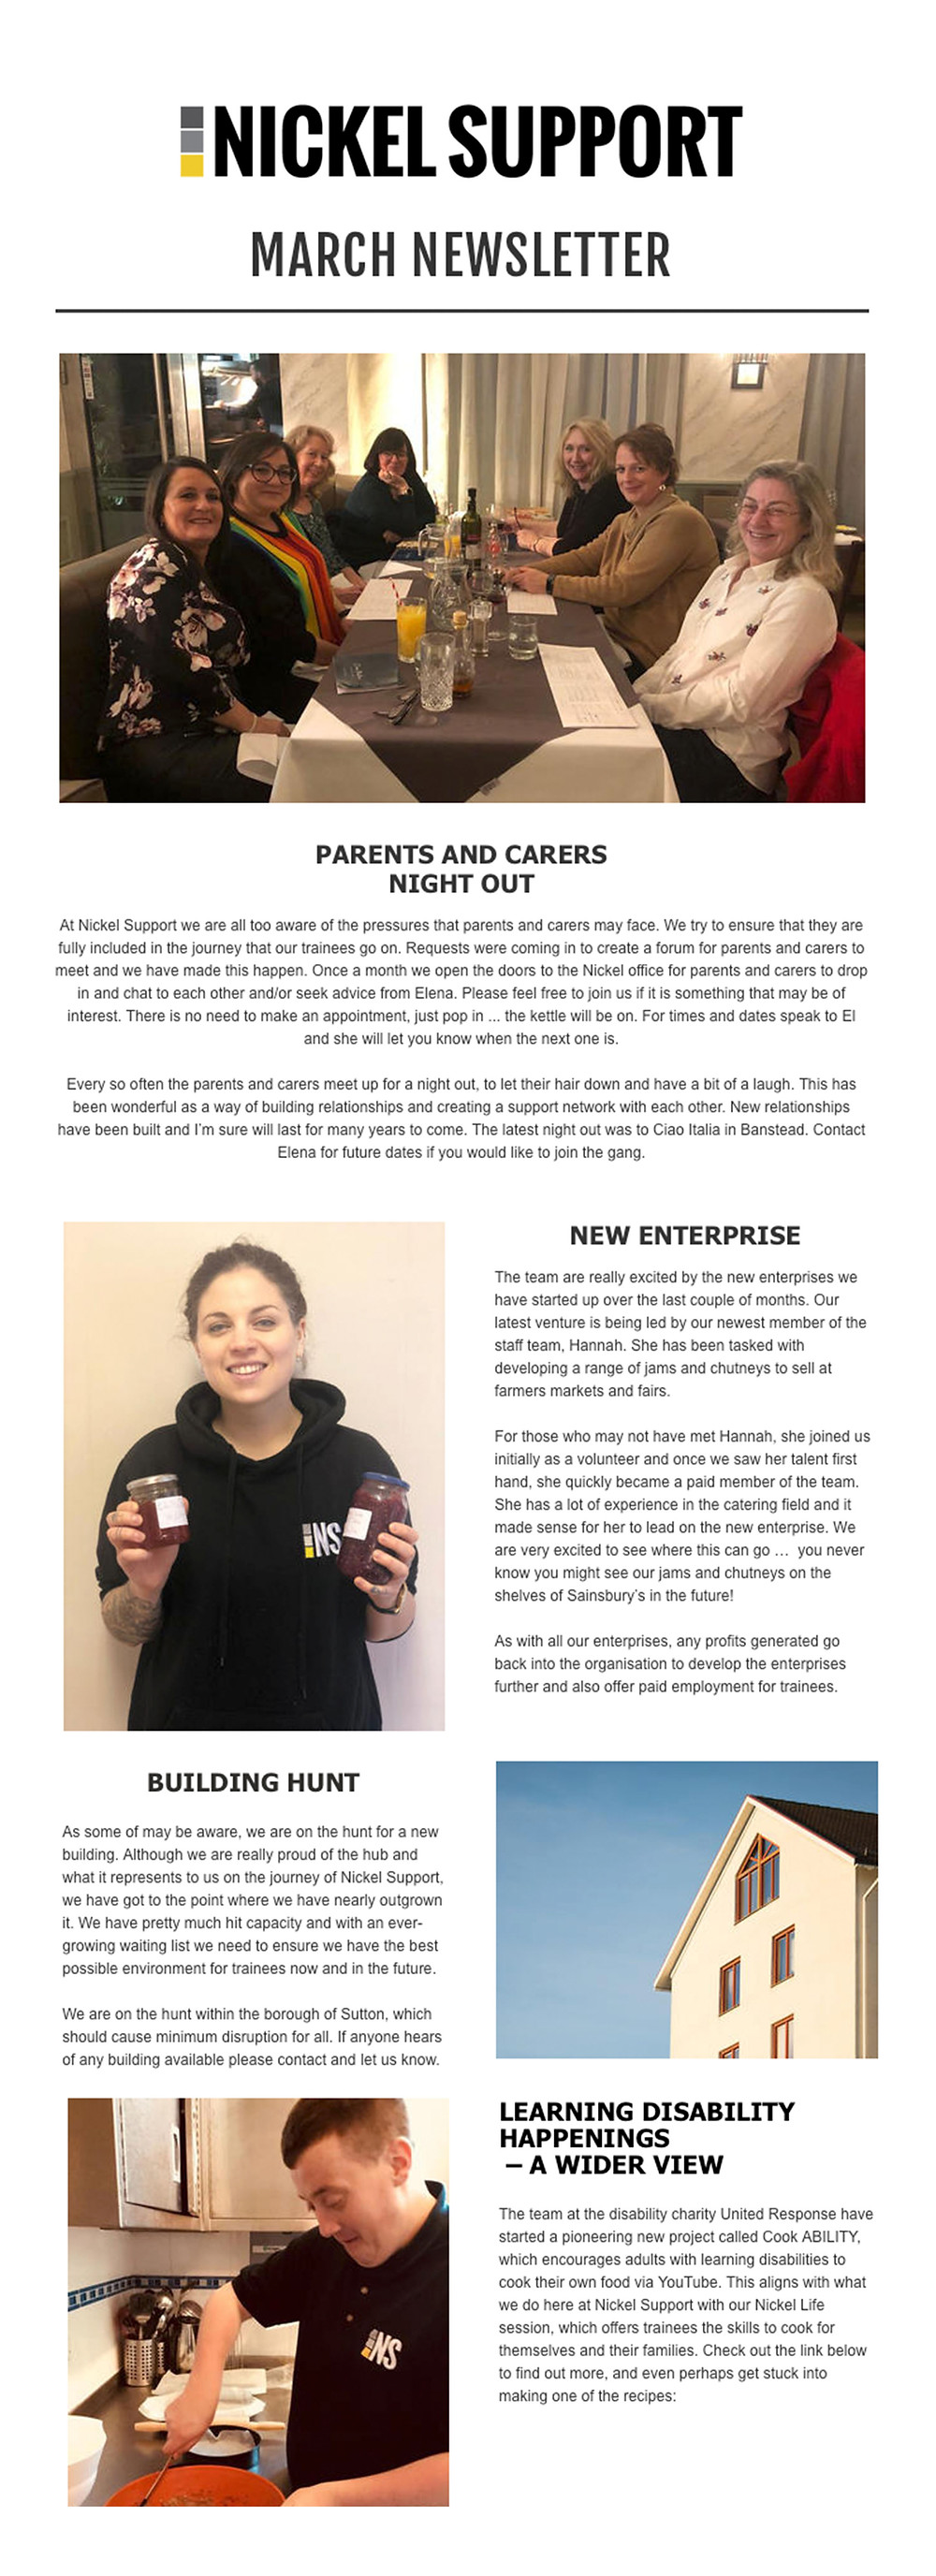 nickel support newsletter learning disabilities